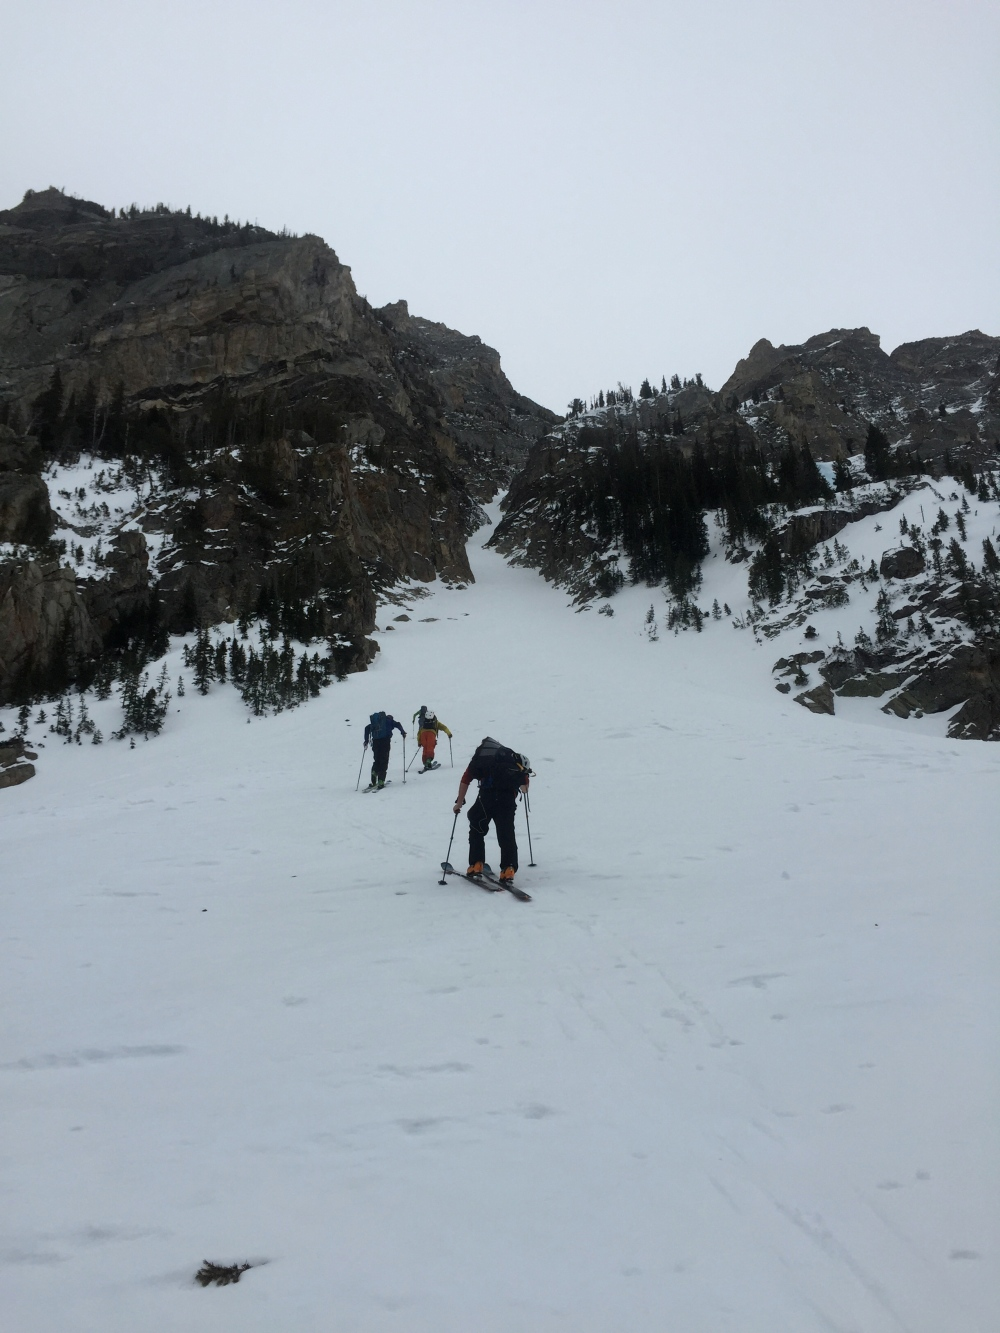 Eric Seymour, Mark Fellerman, Tanner Flanagan, and Fred Marmsater working there way up to the couloir.